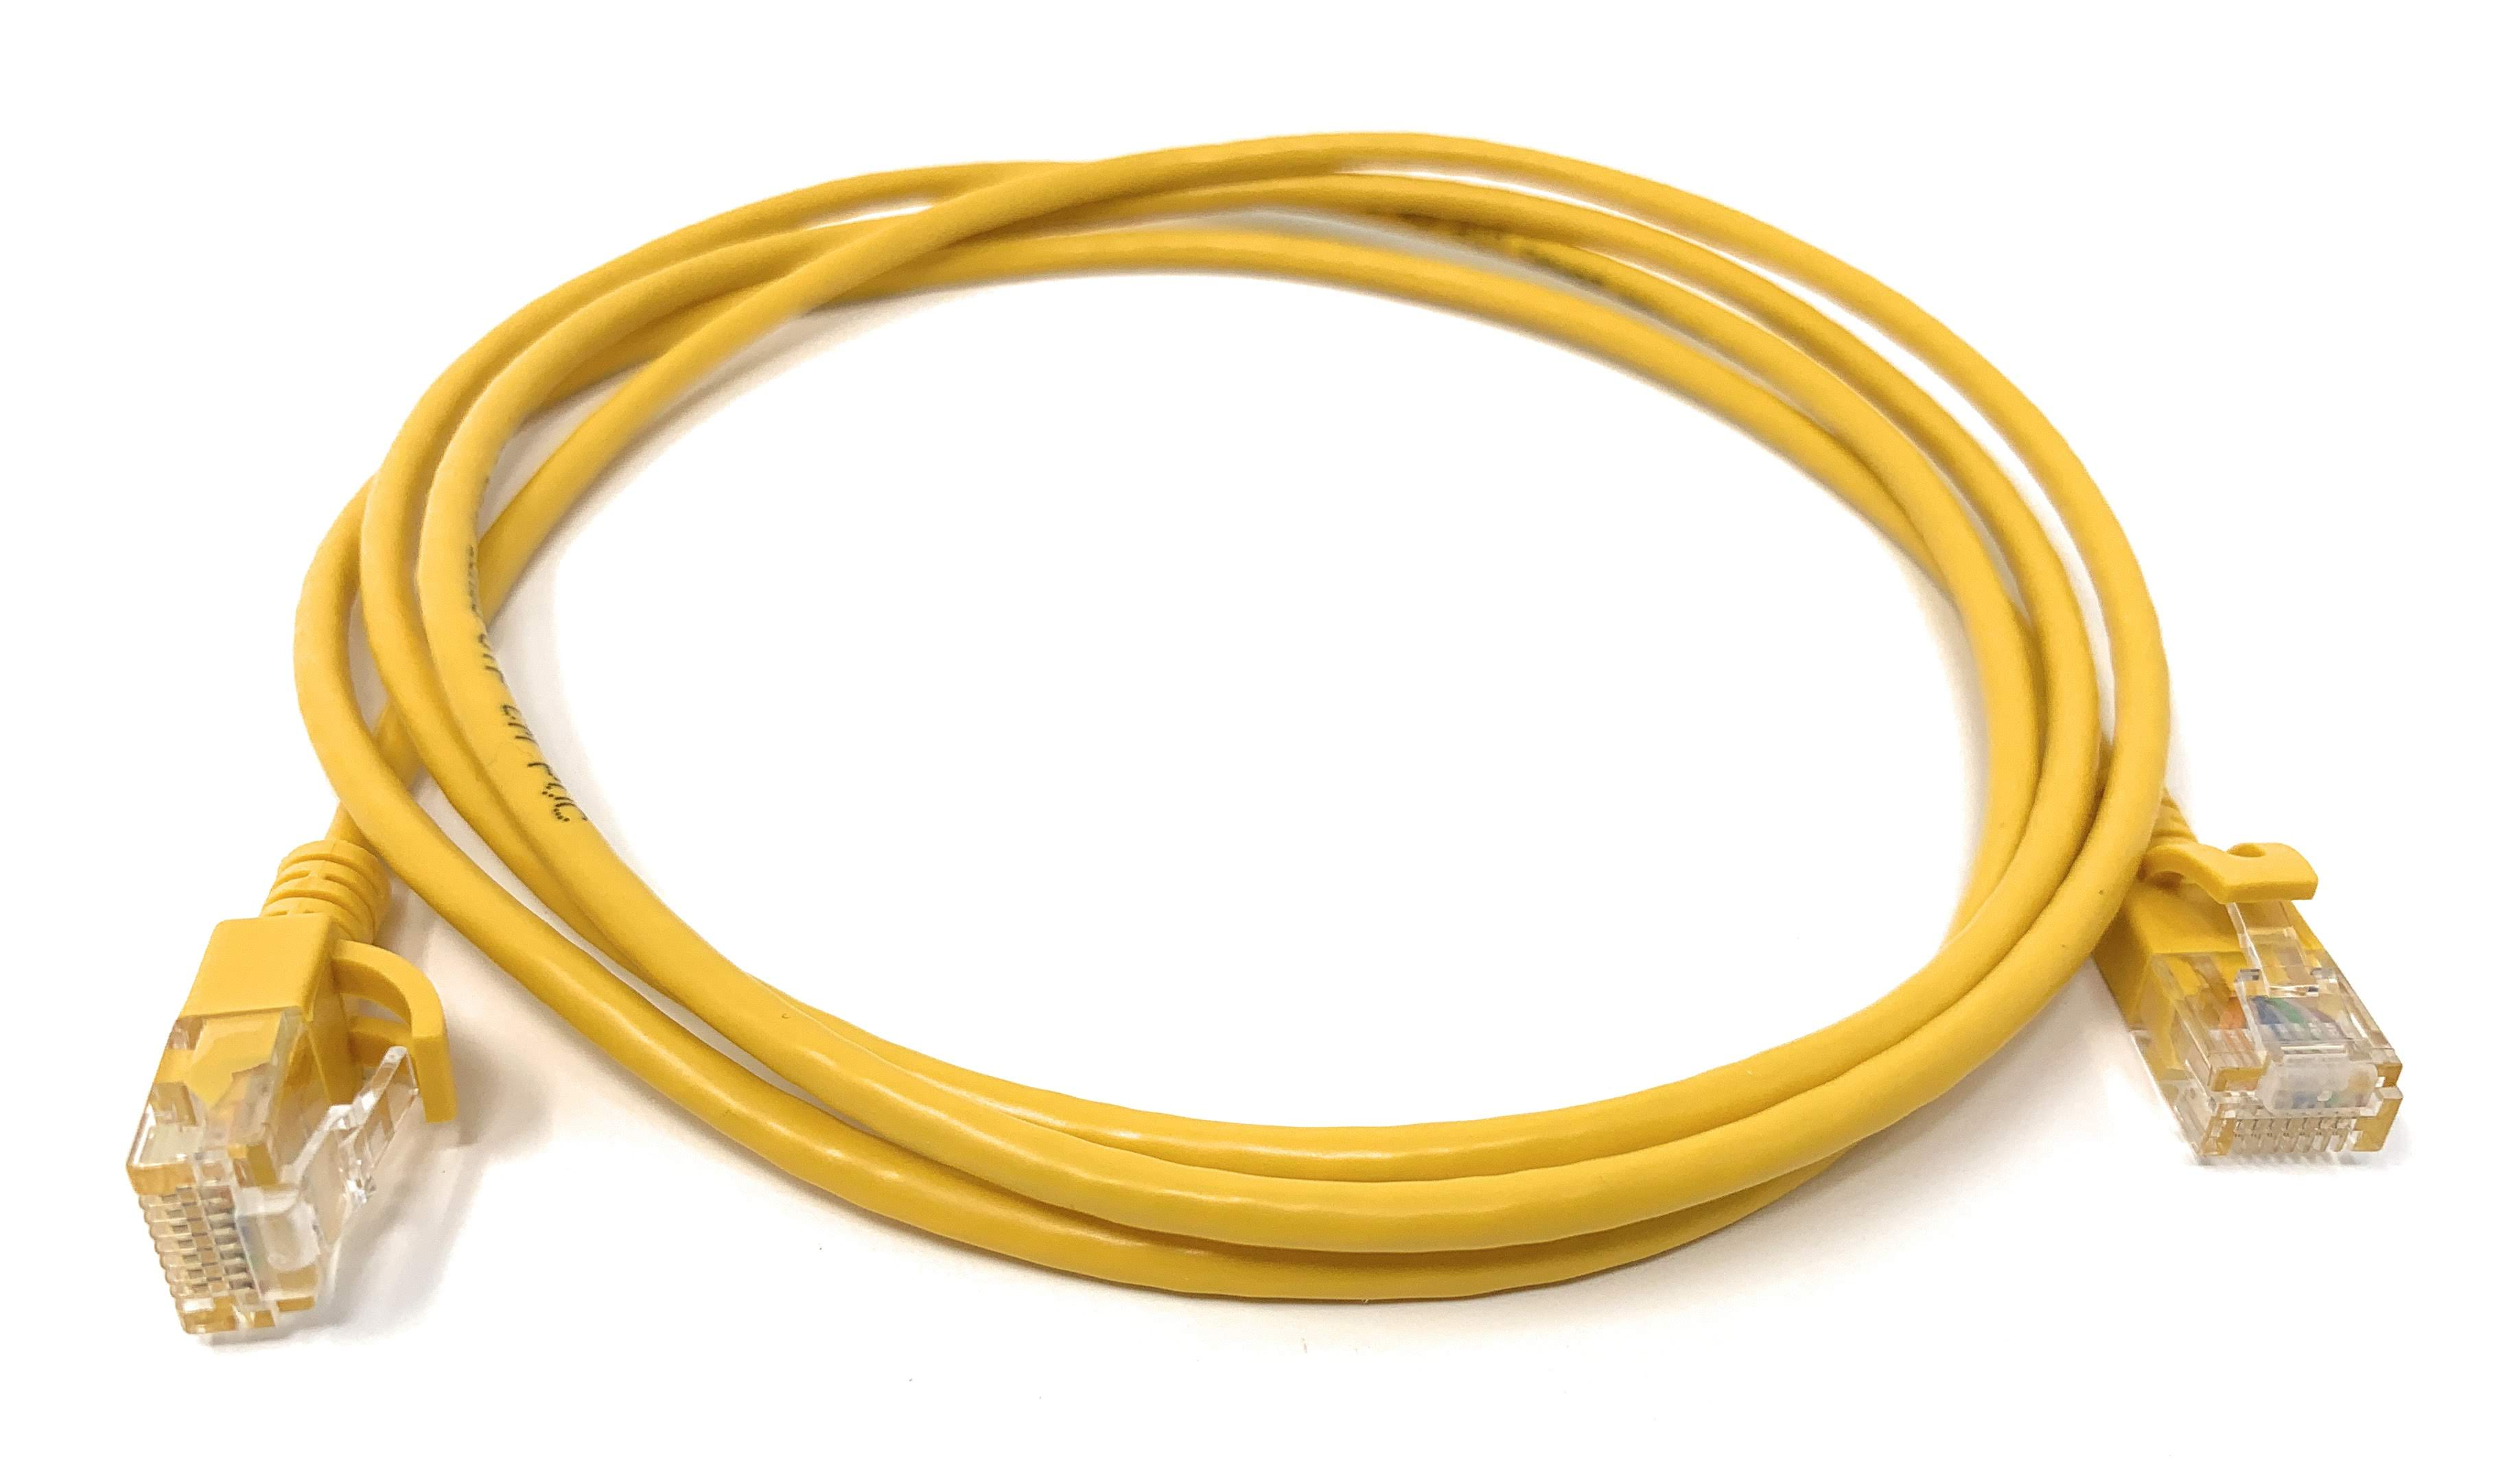 Category 6a 28awg Patch Cables with Slim Jacket